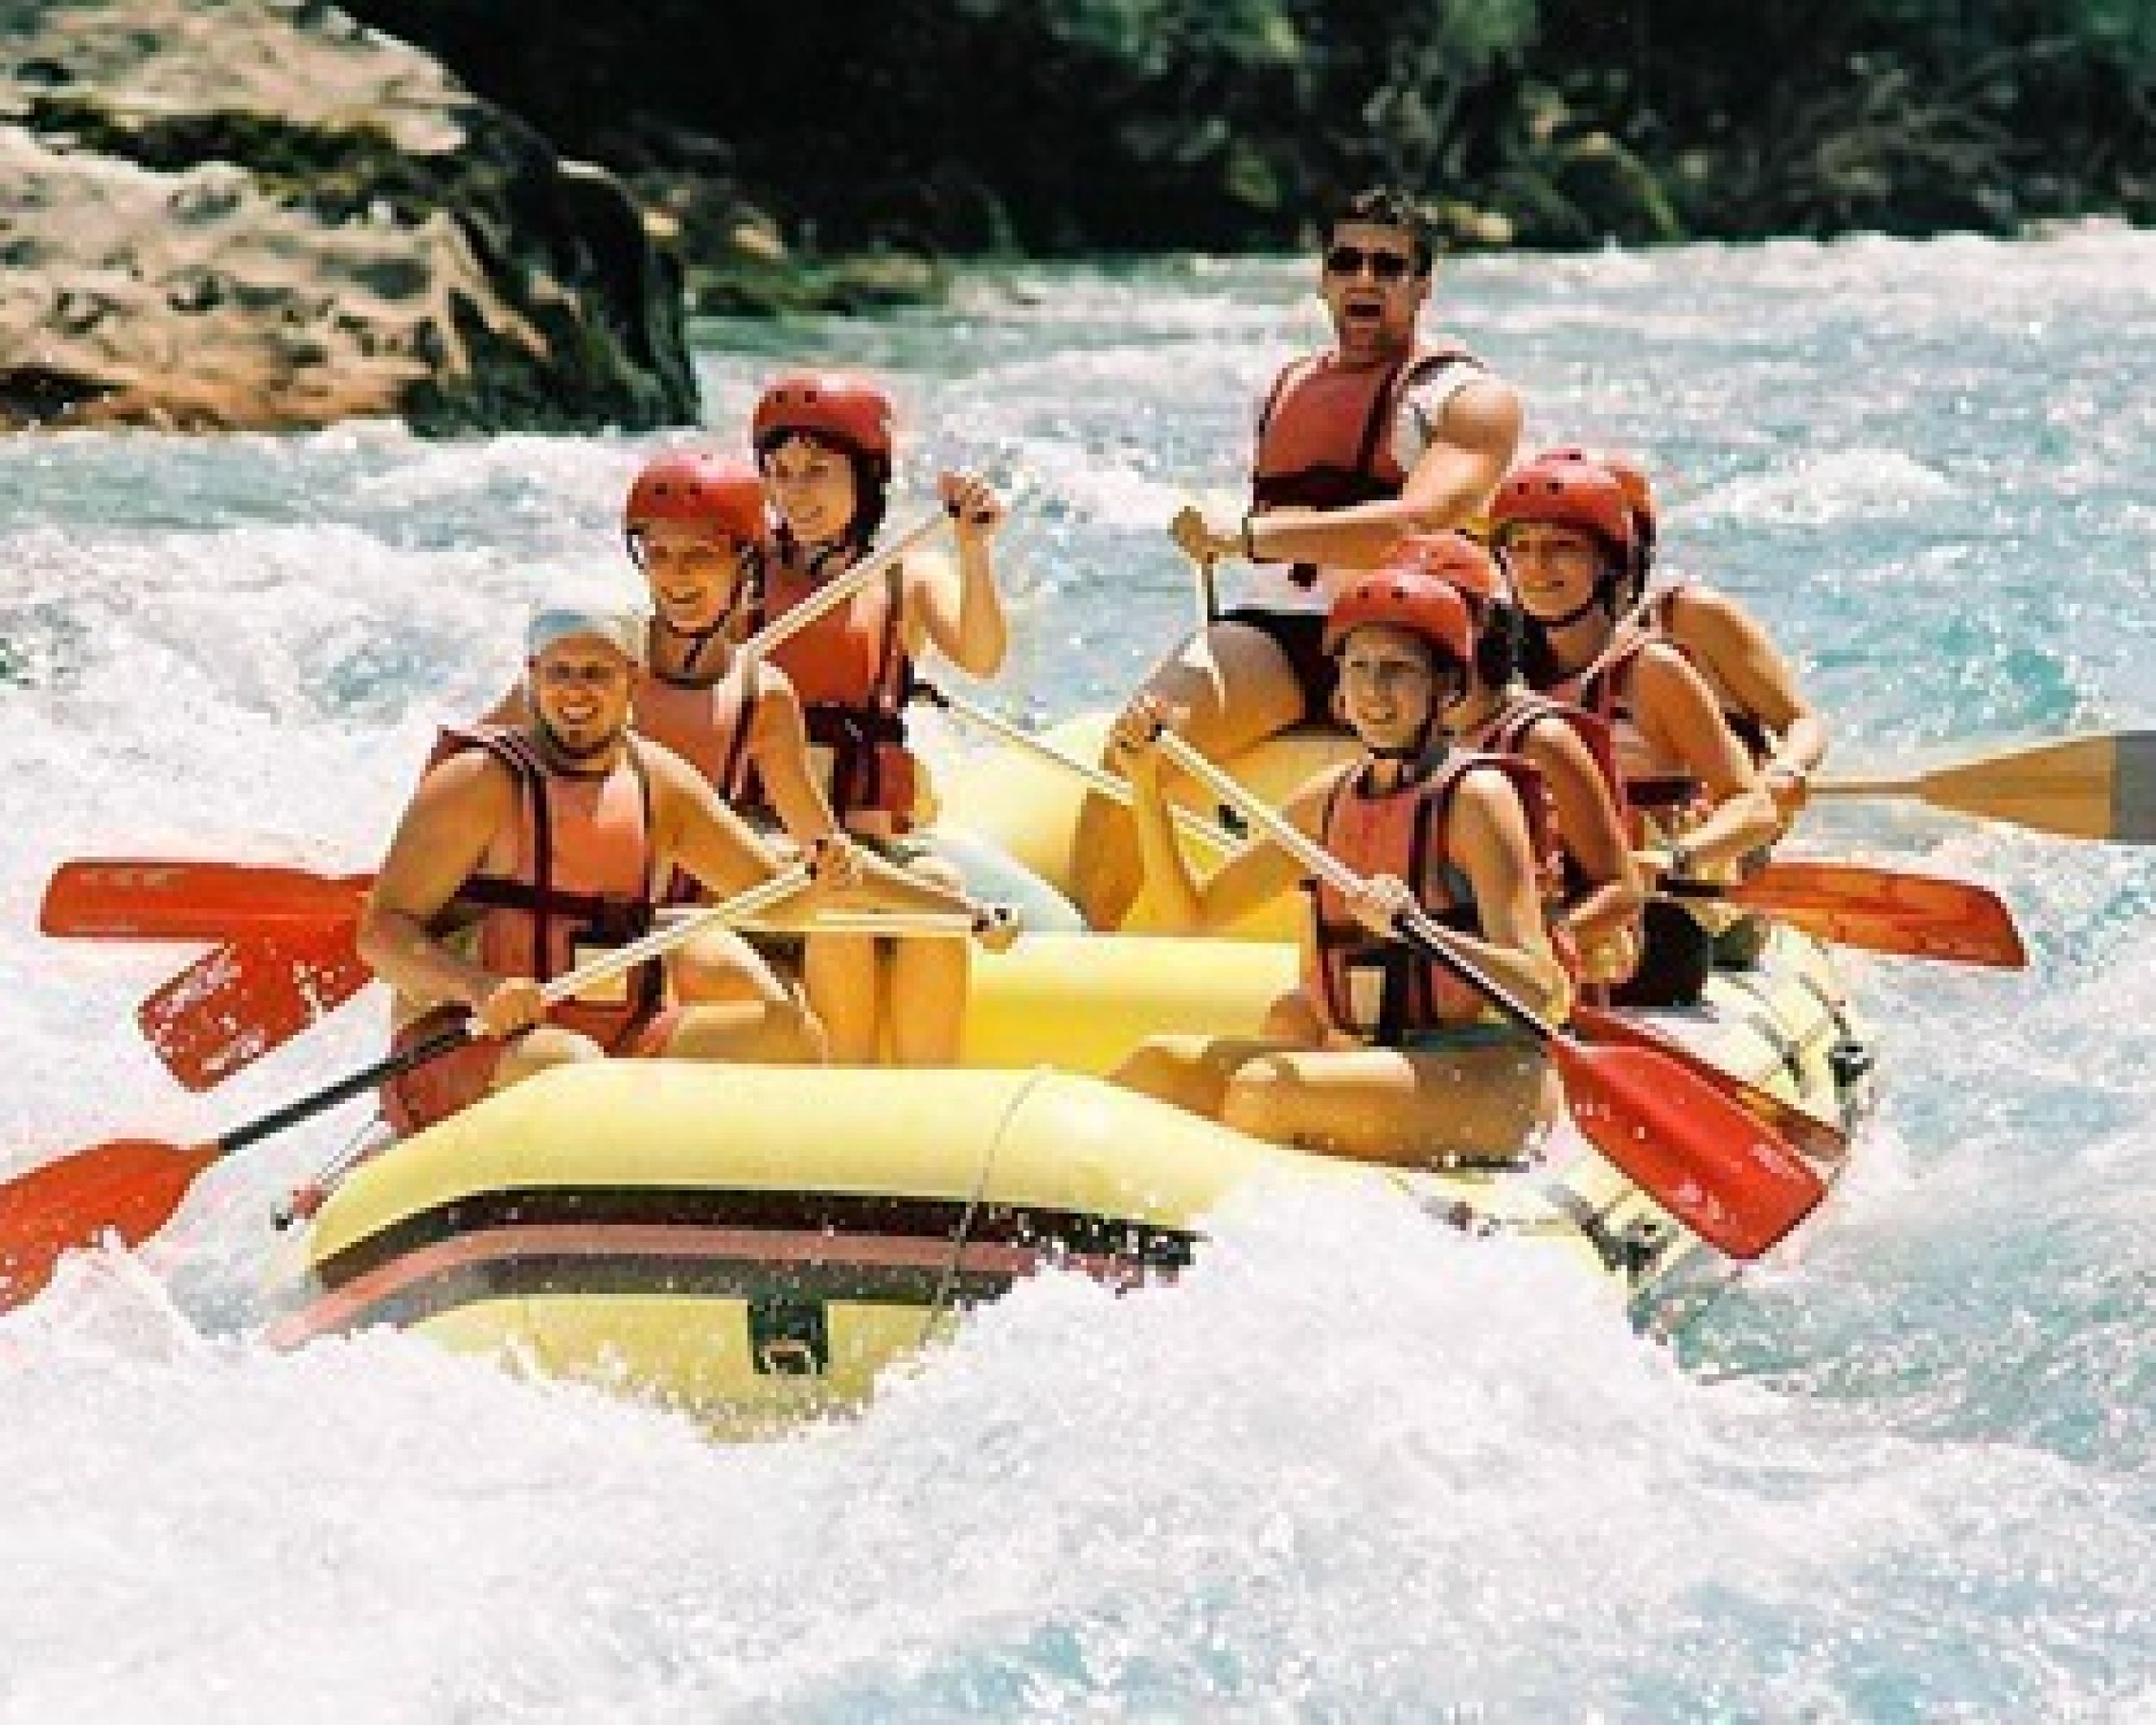 Rafting in hiking